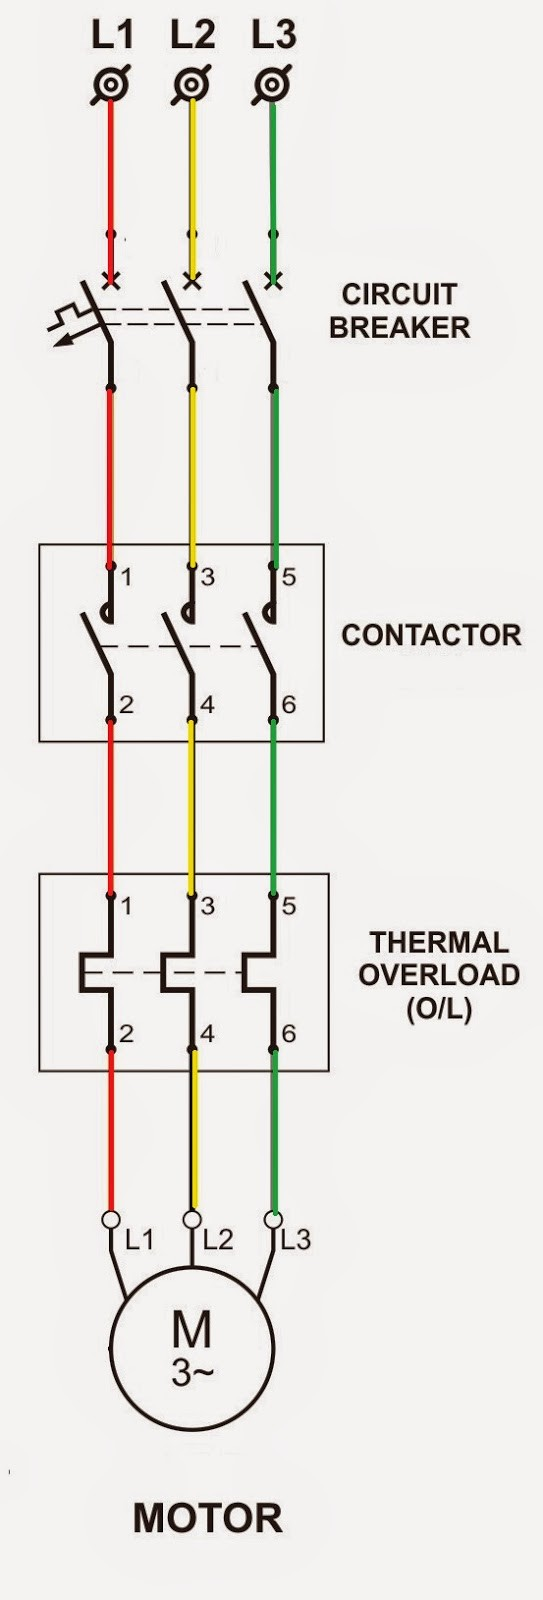 Towbar Wiring Diagram Nz Will Be A Thing Electrical Diagrams 3 Phase Dol Starter Arbortech Trailer Lights Basic